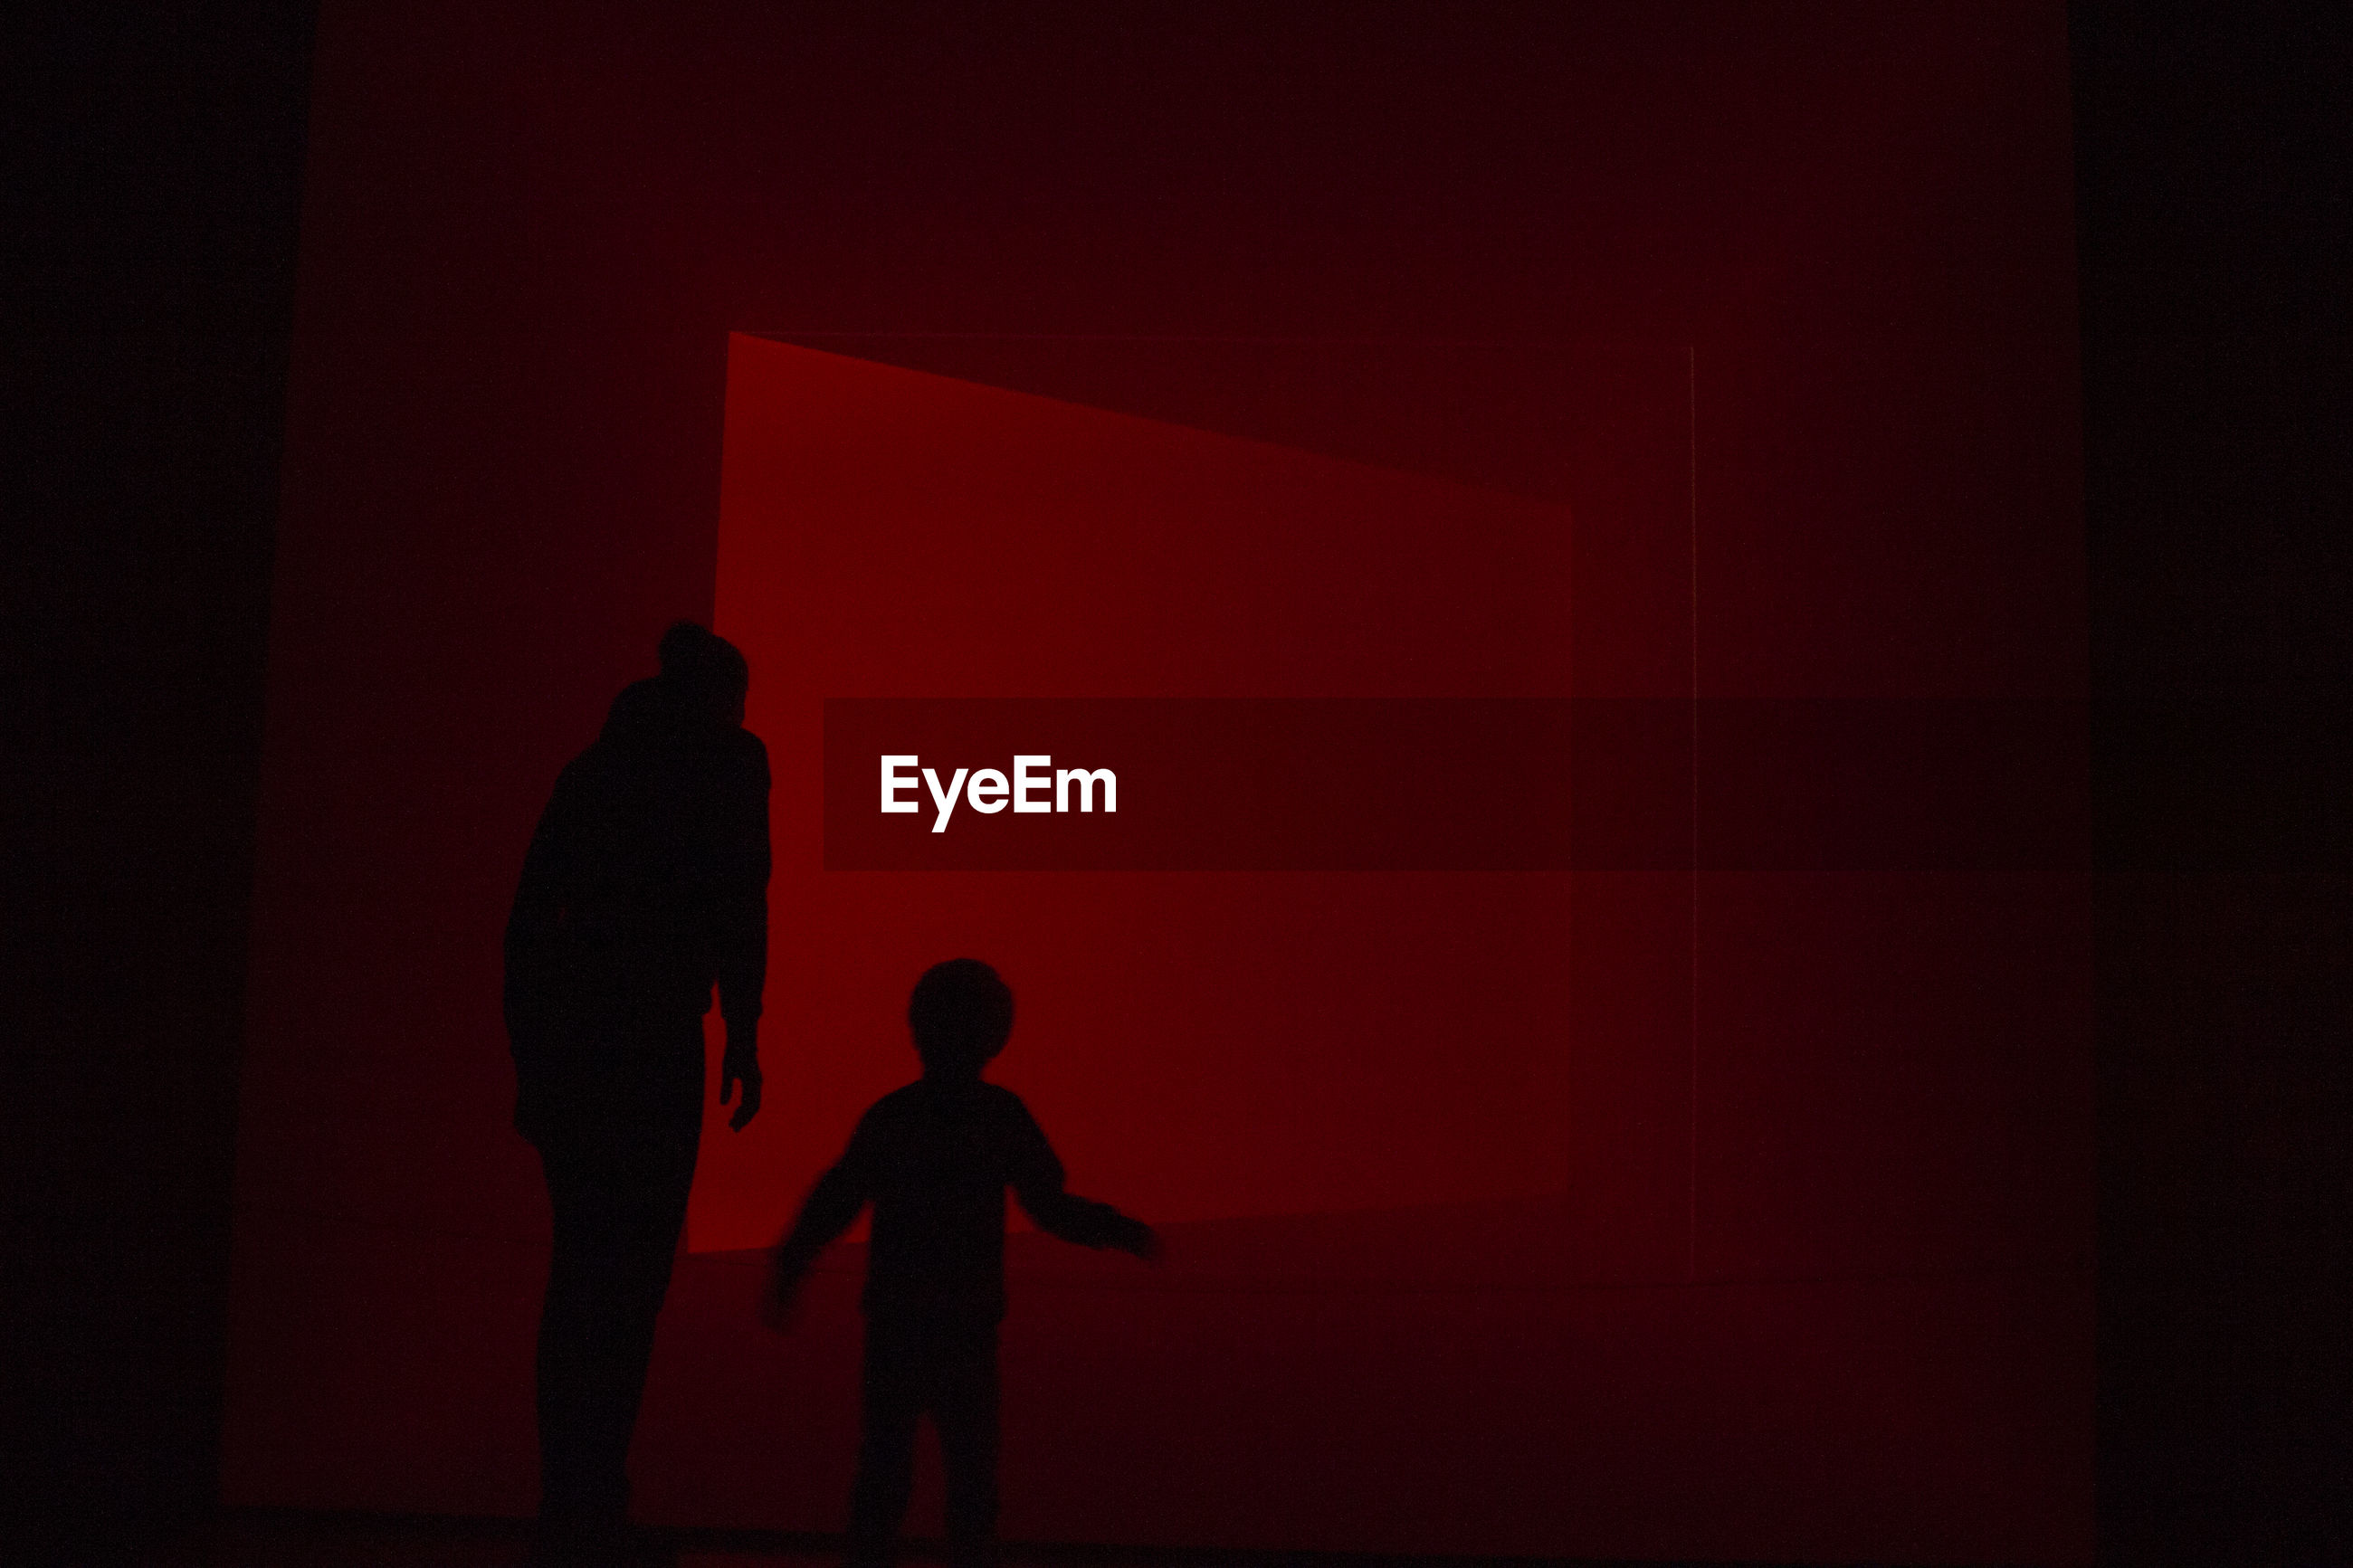 SILHOUETTE OF CHILD STANDING IN RED LIGHT